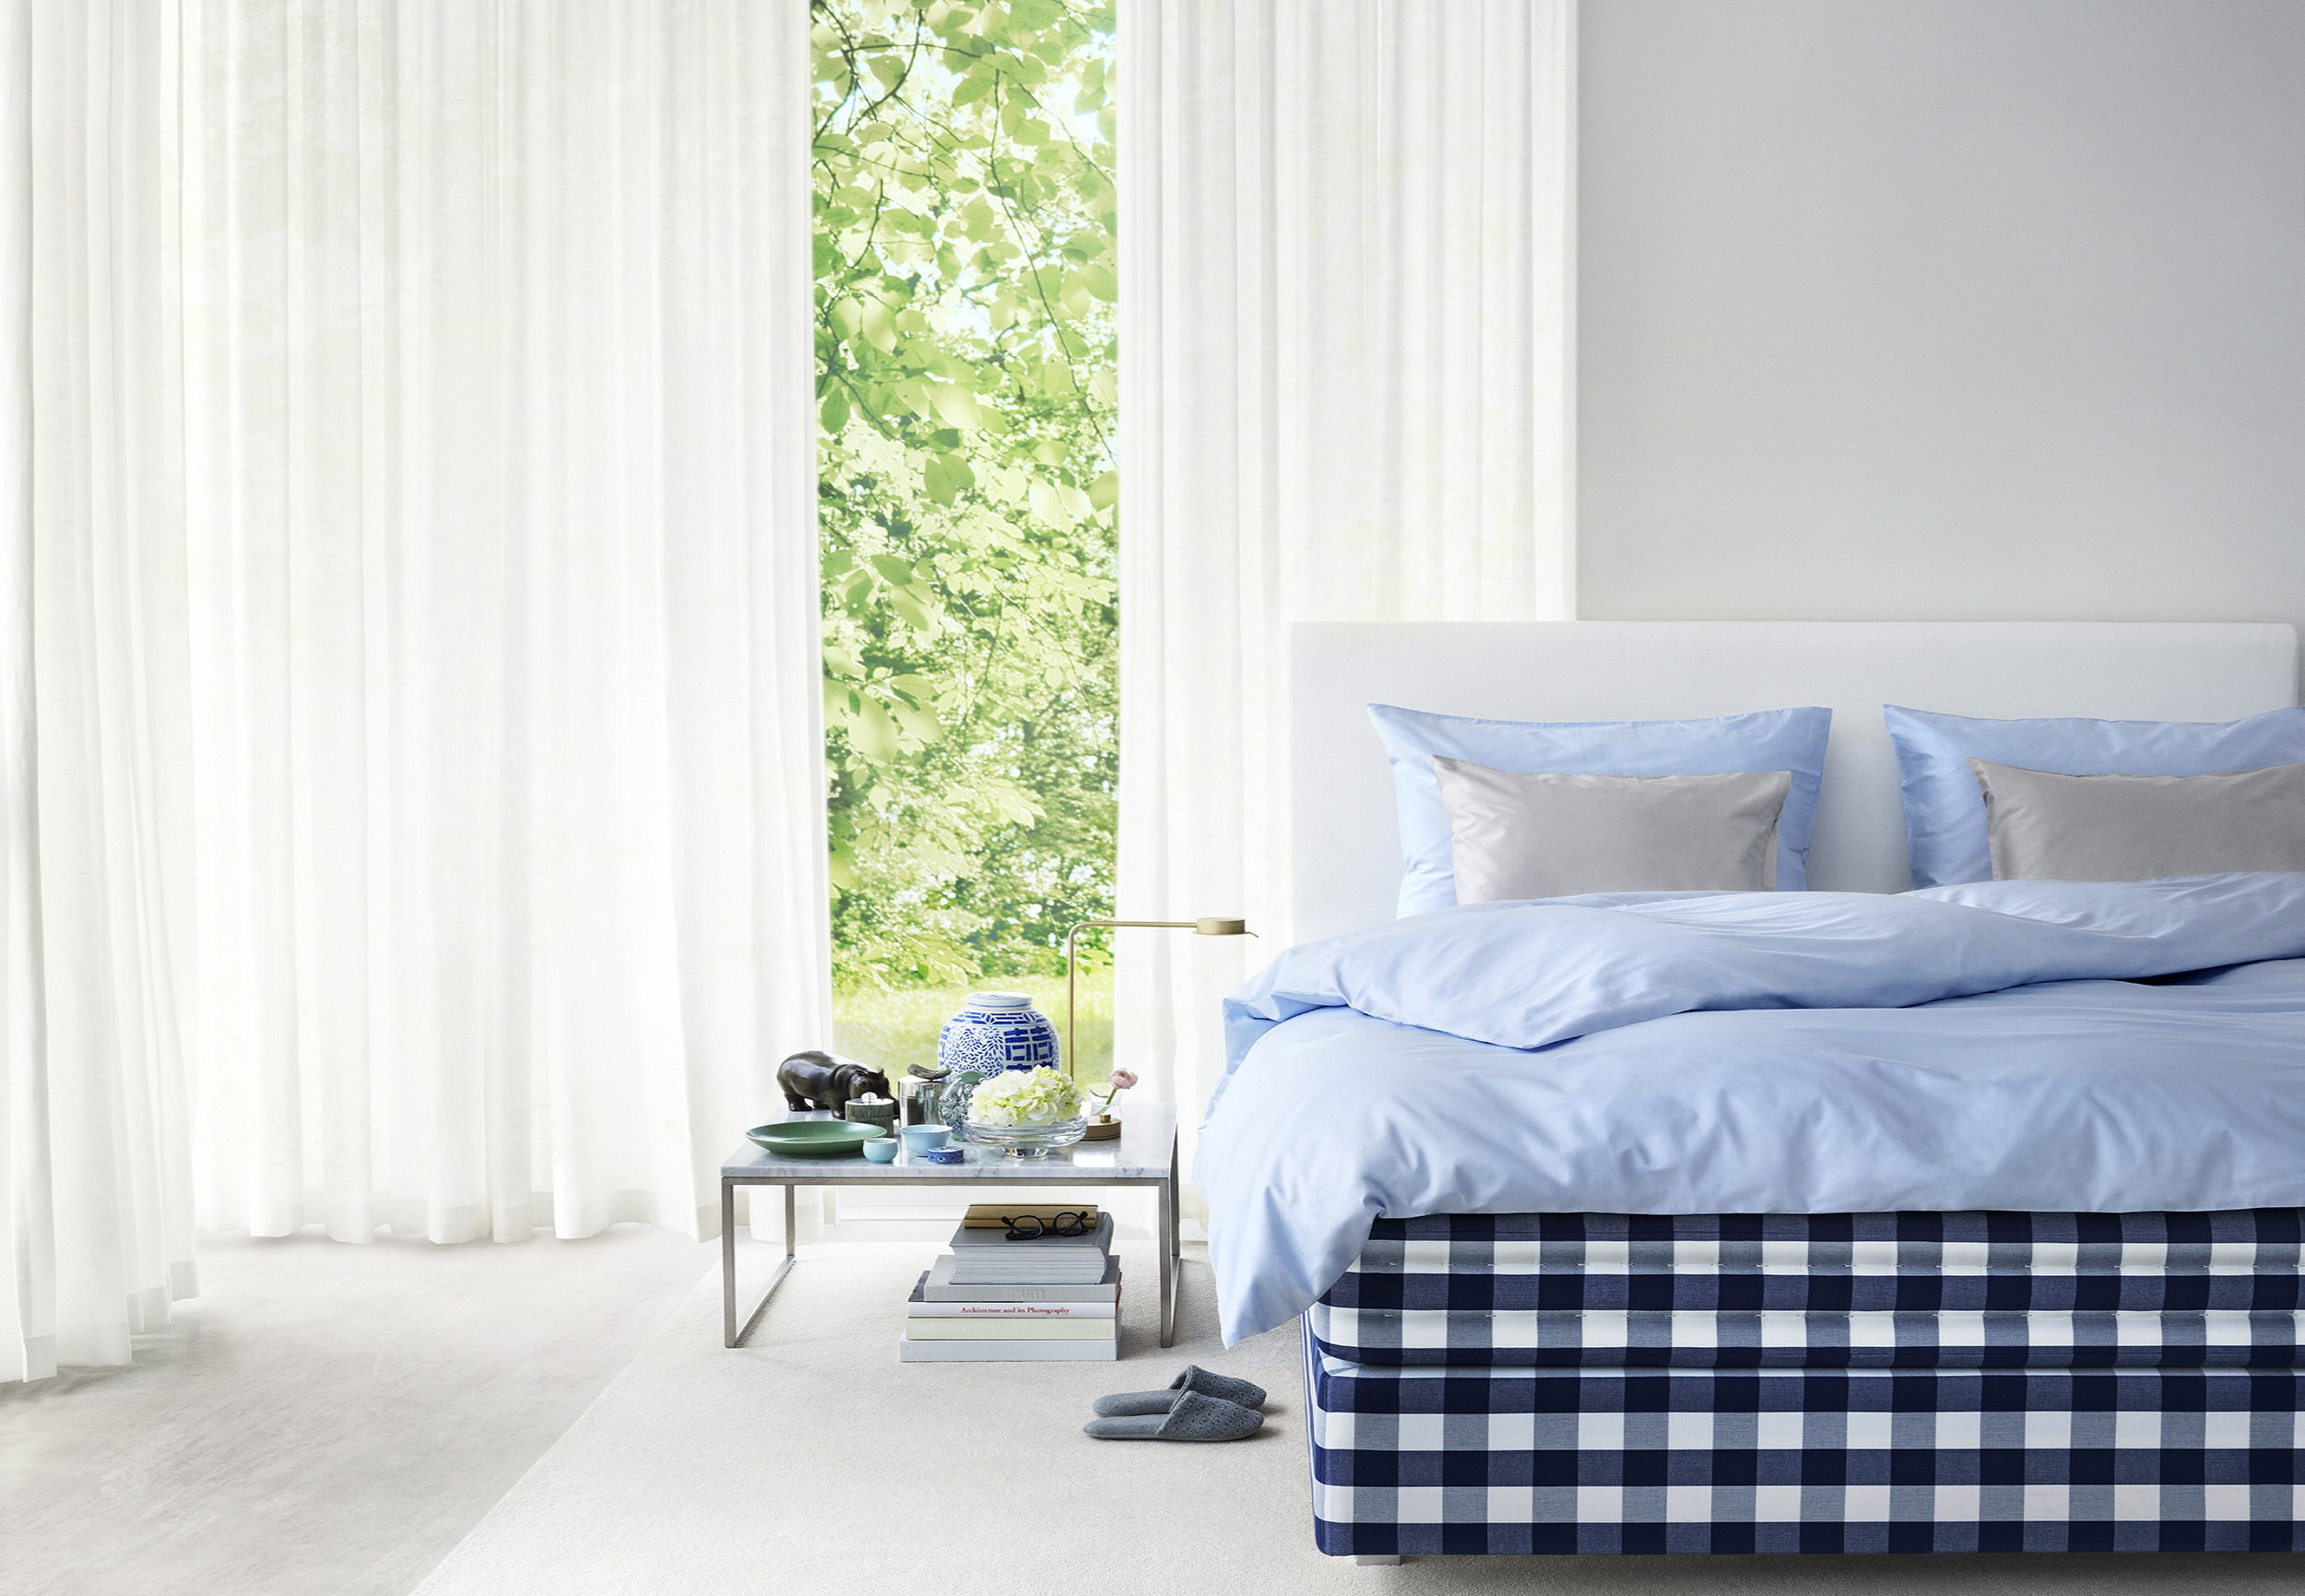 Hästens - Hästens has spent six generations handcrafting the ultimate in luxury sleep. Ethically-sourced, all-natural materials will help you rest easy, lulling you to sleep the way nature intended.